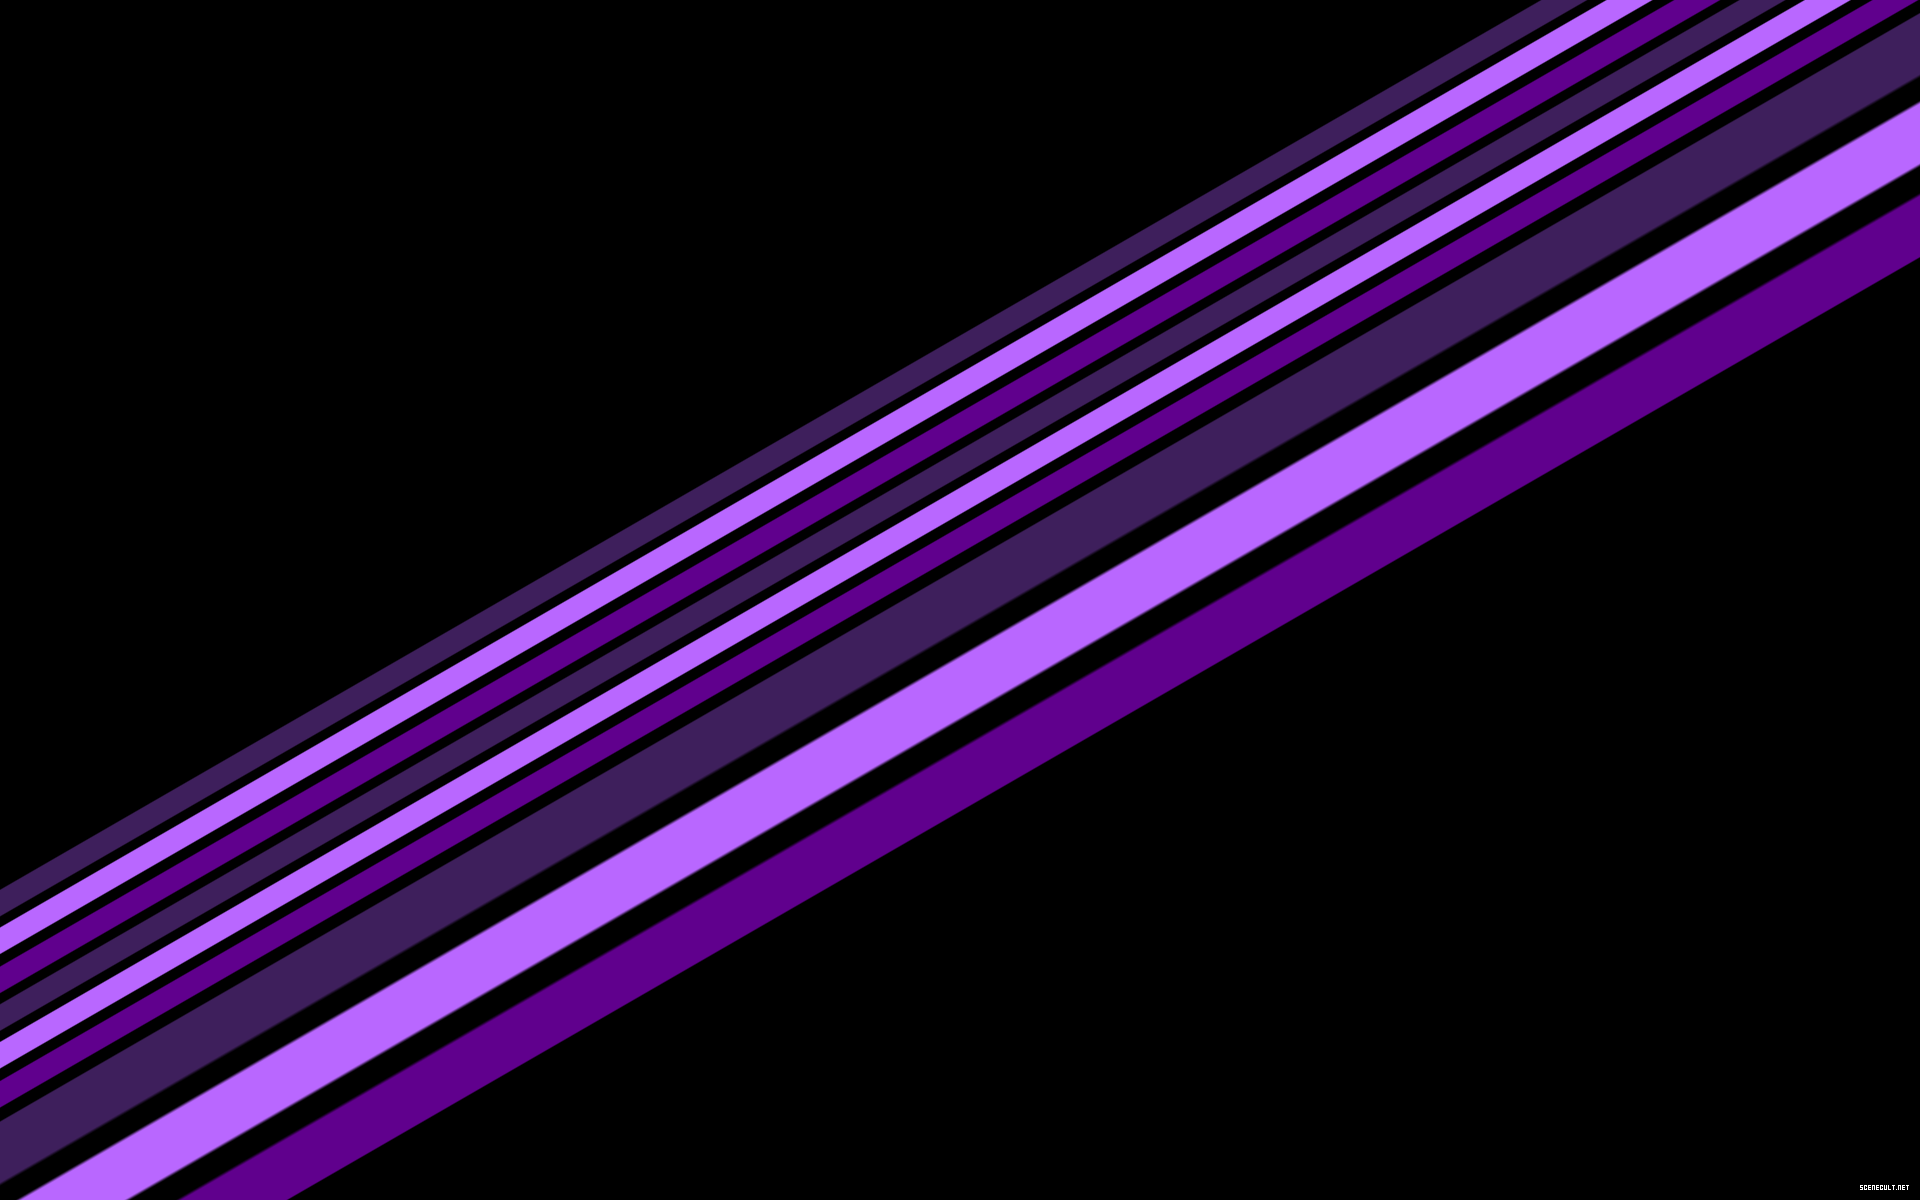 Black And Purple Abstract Wallpaper Hd Hq Free Download 12755